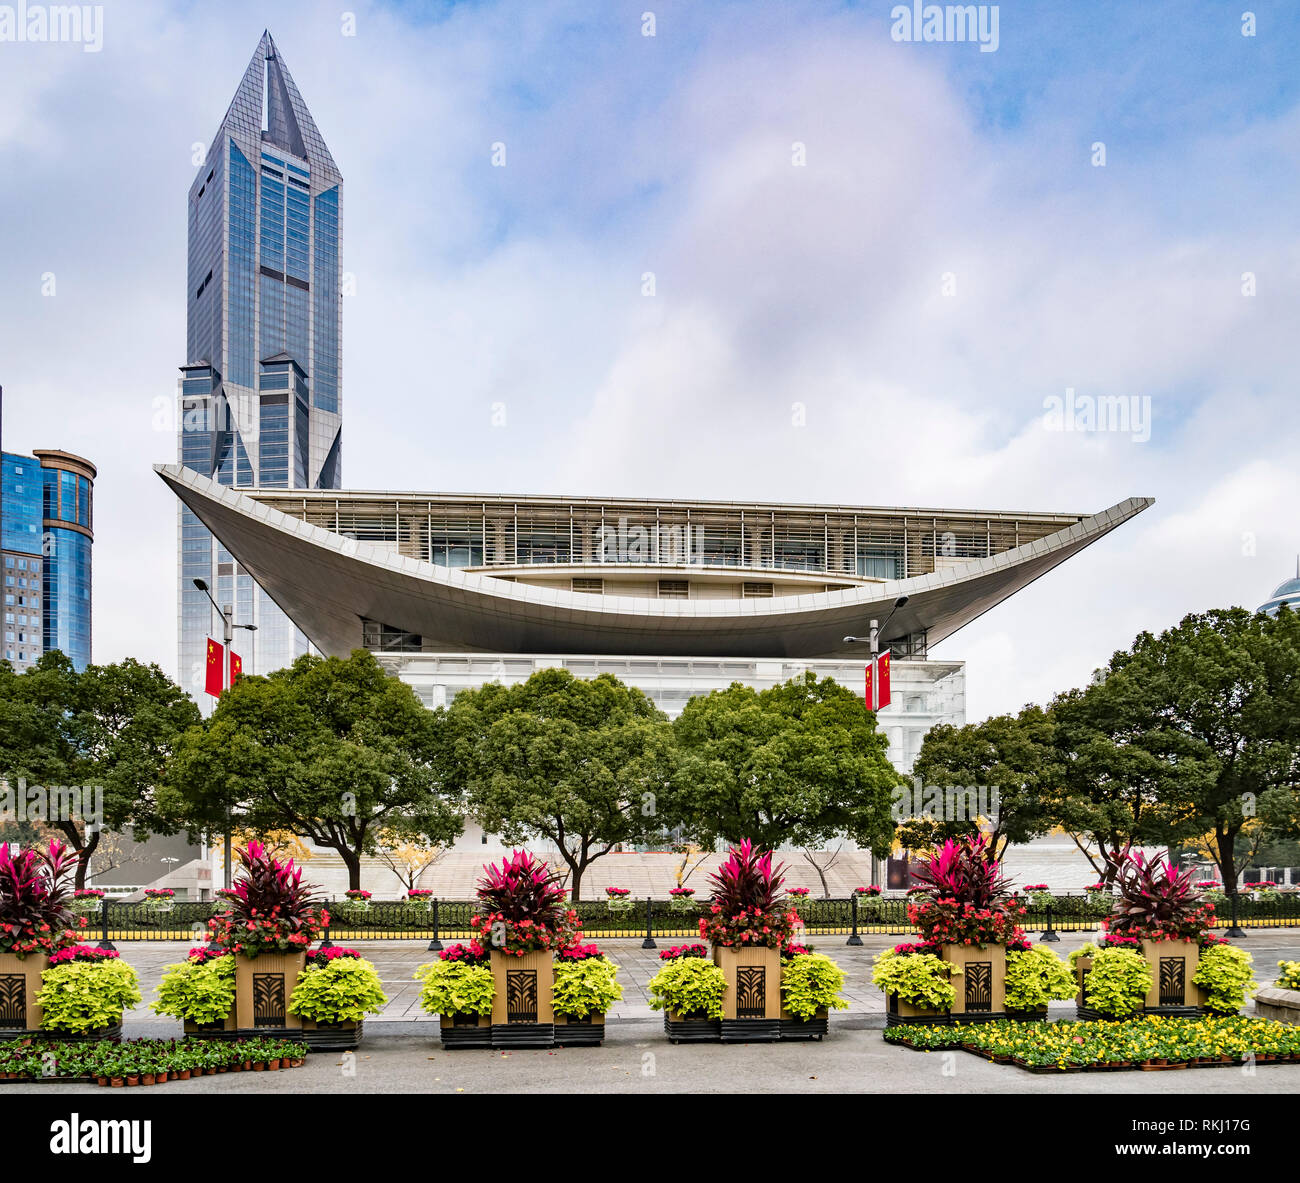 2 December 2018: Shanghai, China - The Shanghai Urban Planning Exhibition Center from People's Square. - Stock Image